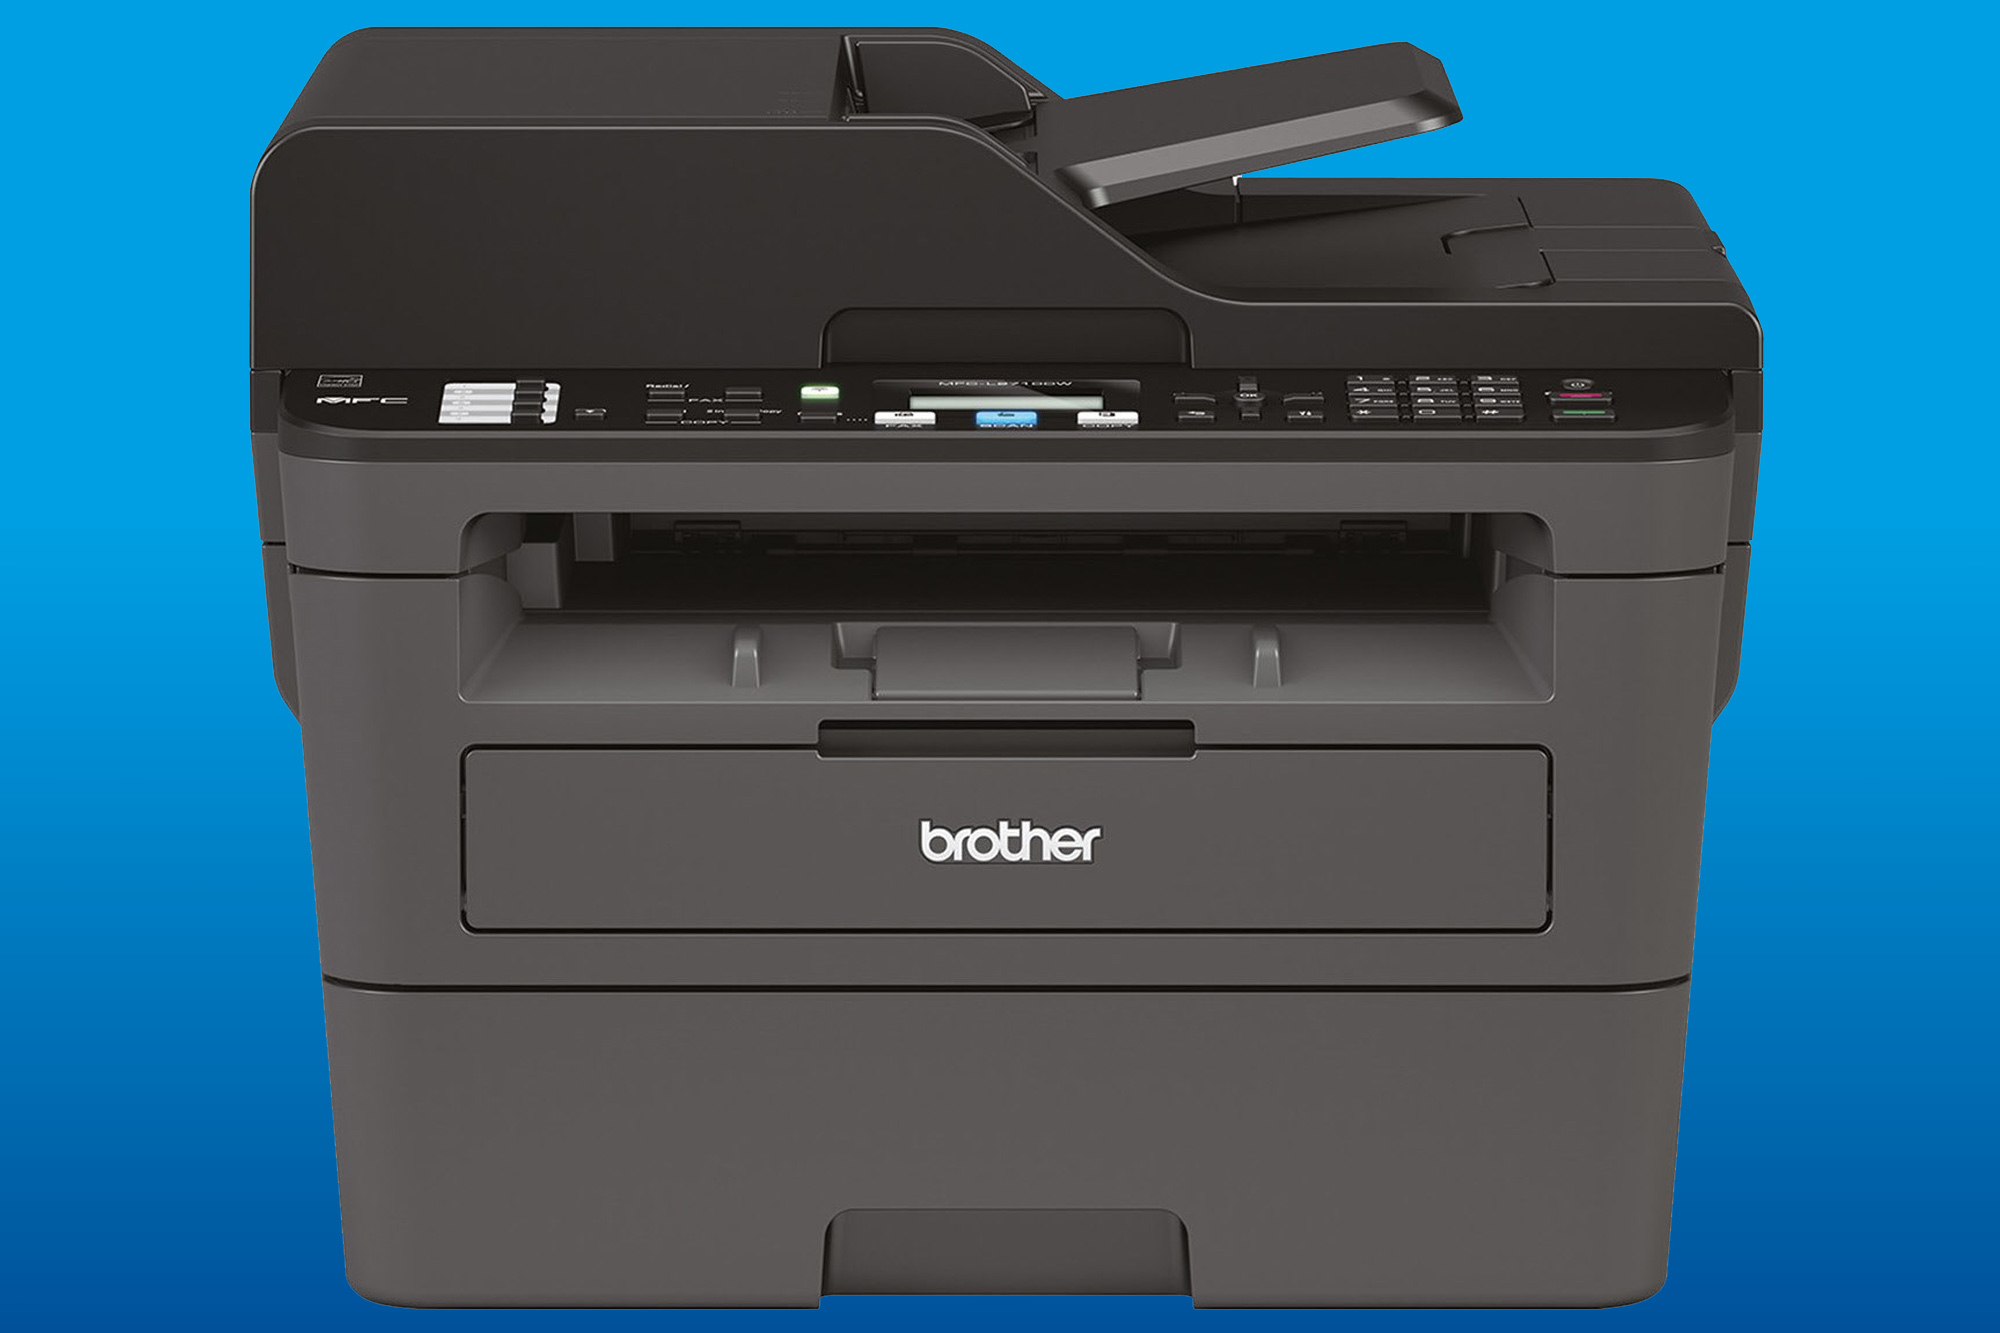 Brother MFC-L2710DW - corona Homeoffice